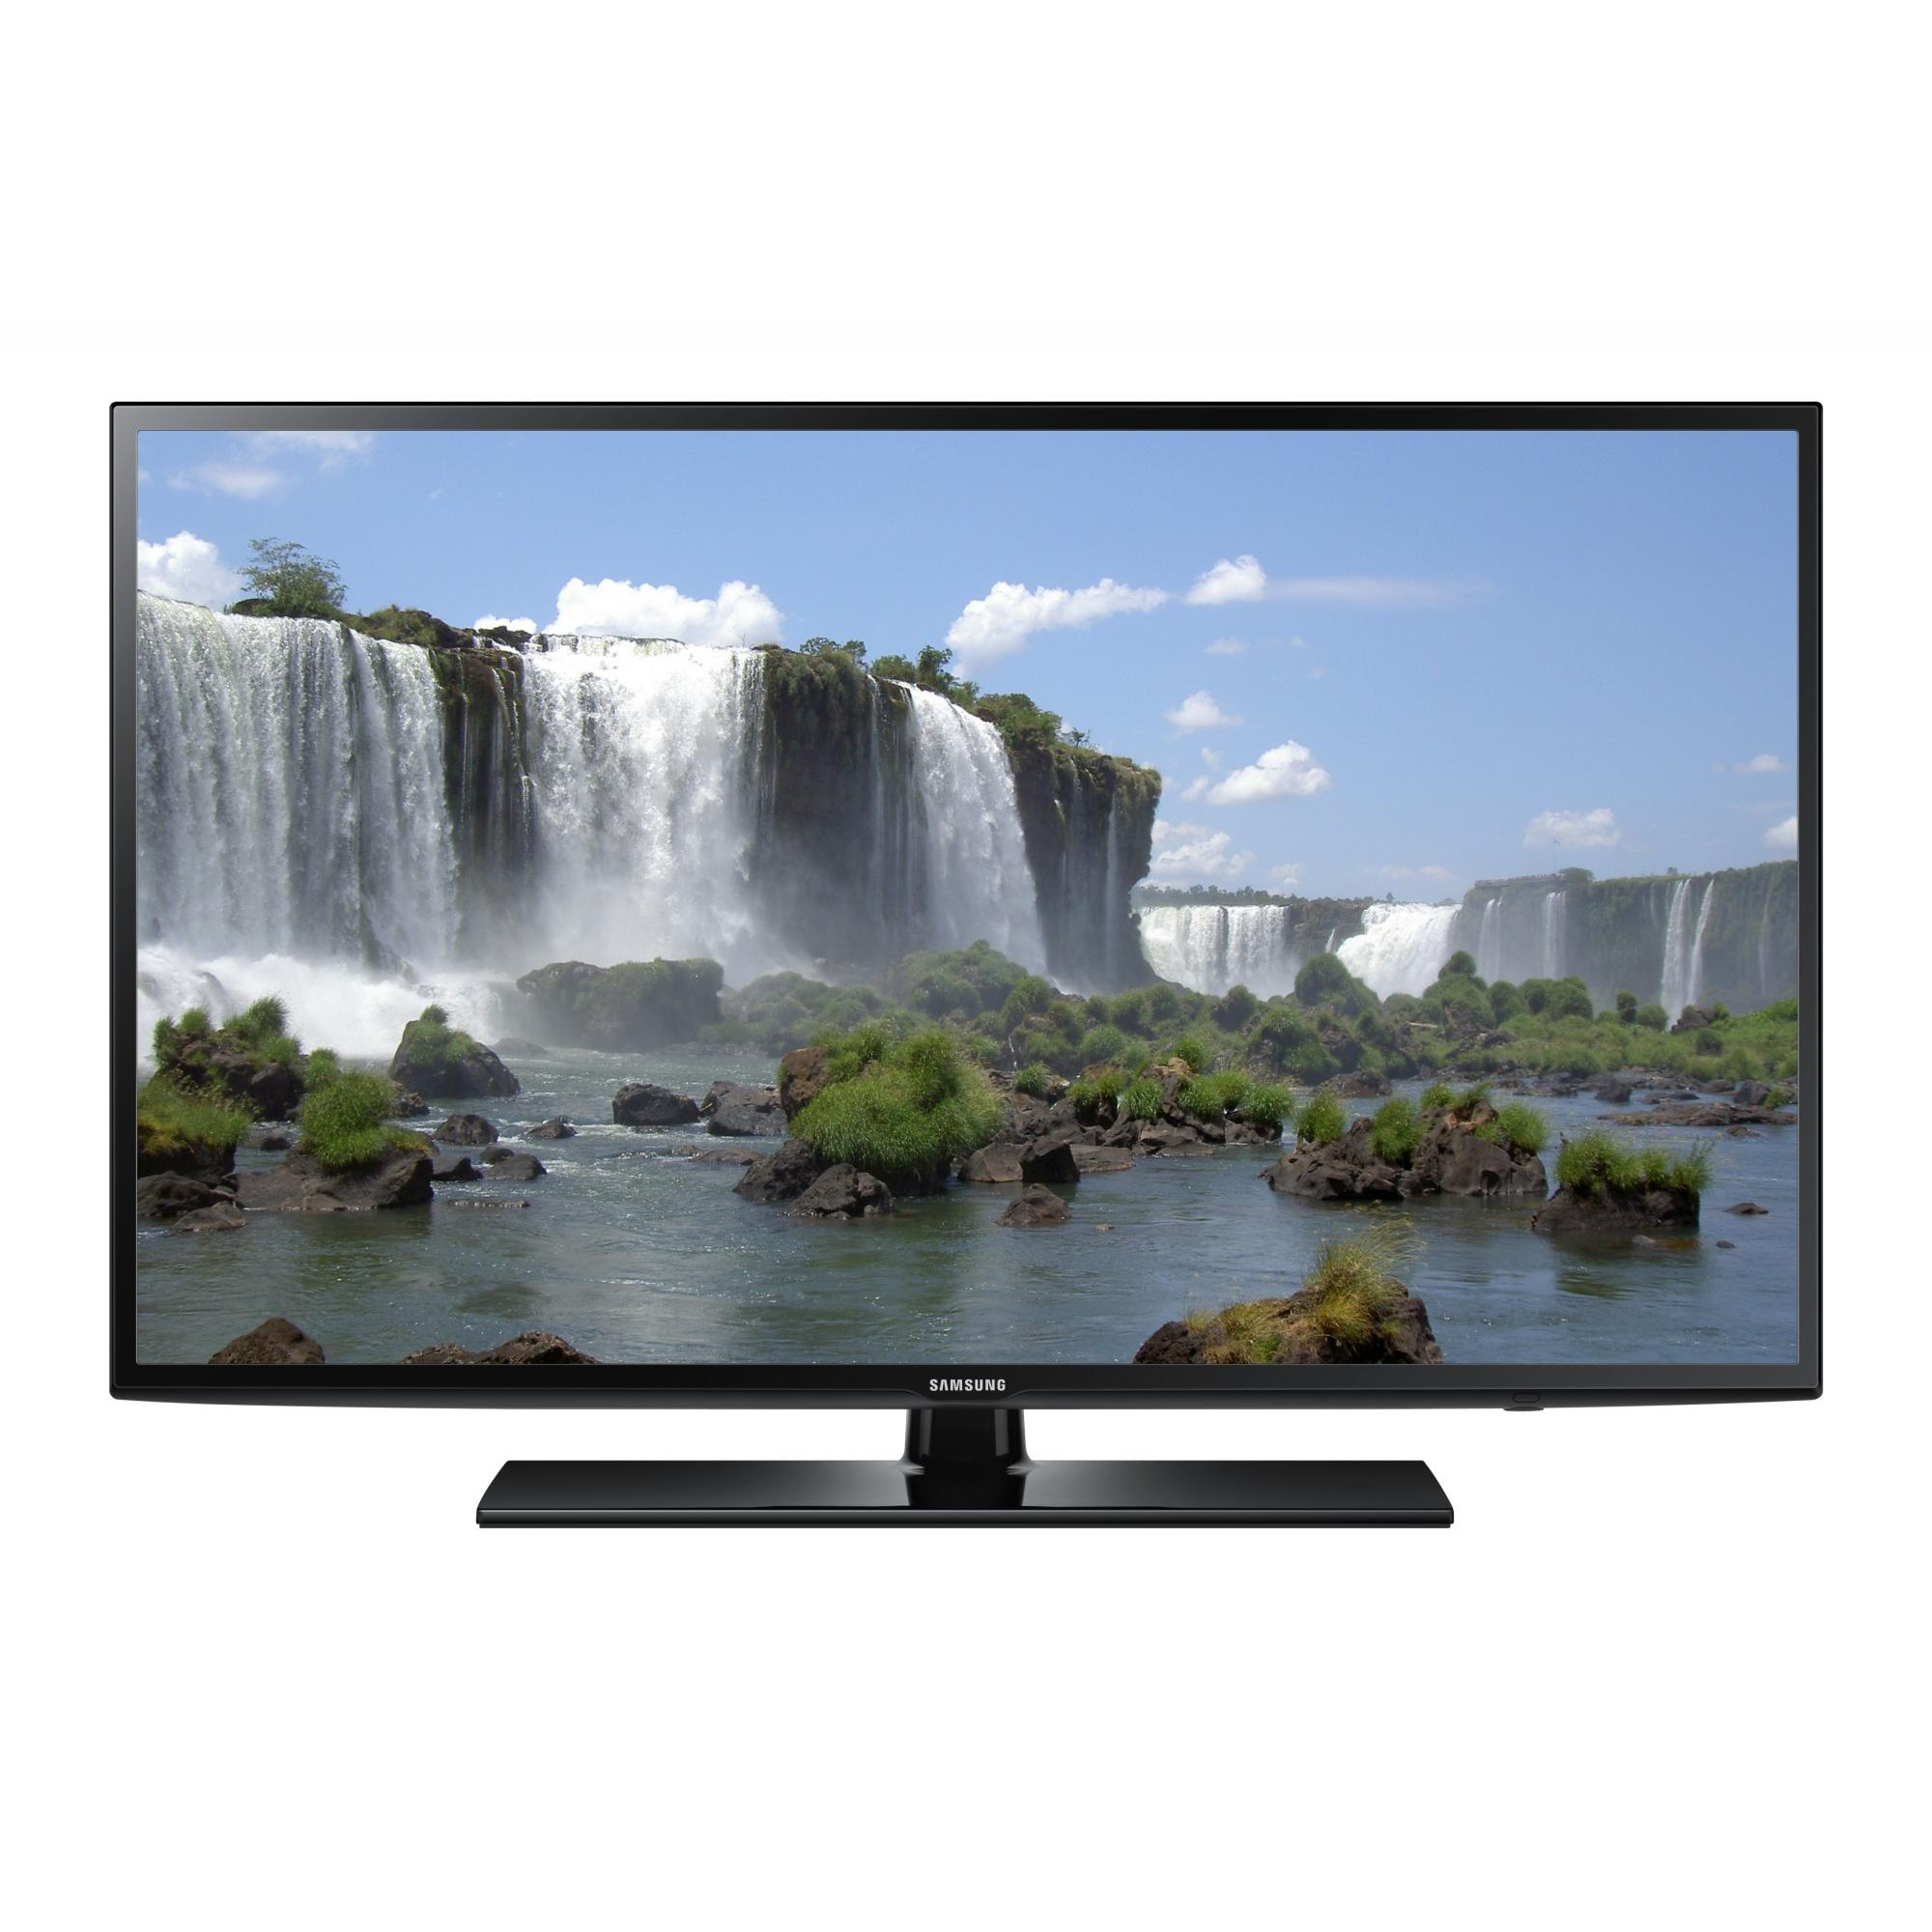 "SAMSUNG 65"" 6200 Series - Full HD Smart LED TV - 1080p, 120MR (Model#: UN65J6200)"